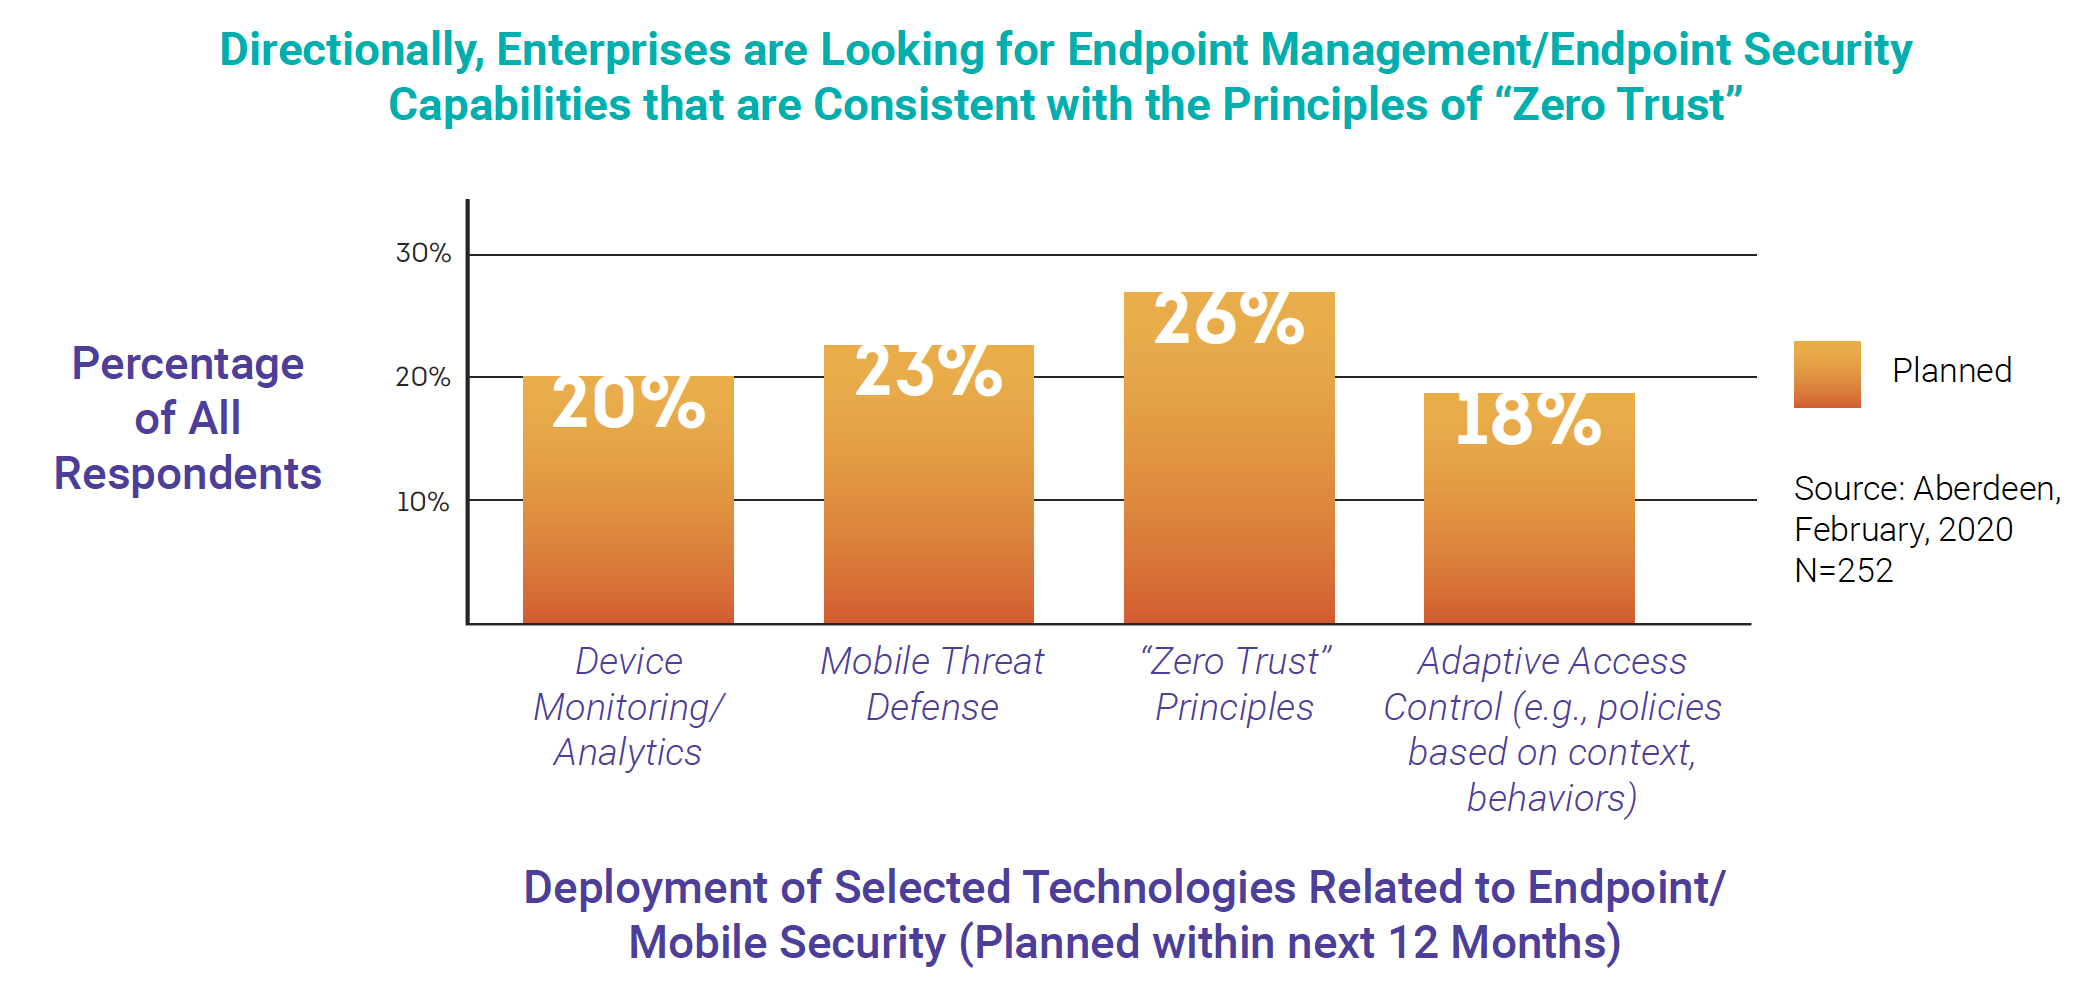 """Directionally, Enterprises are Looking for Endpoint Management/Endpoint Security Capabilities that are Consistent with the Principles of """"Zero Trust"""""""